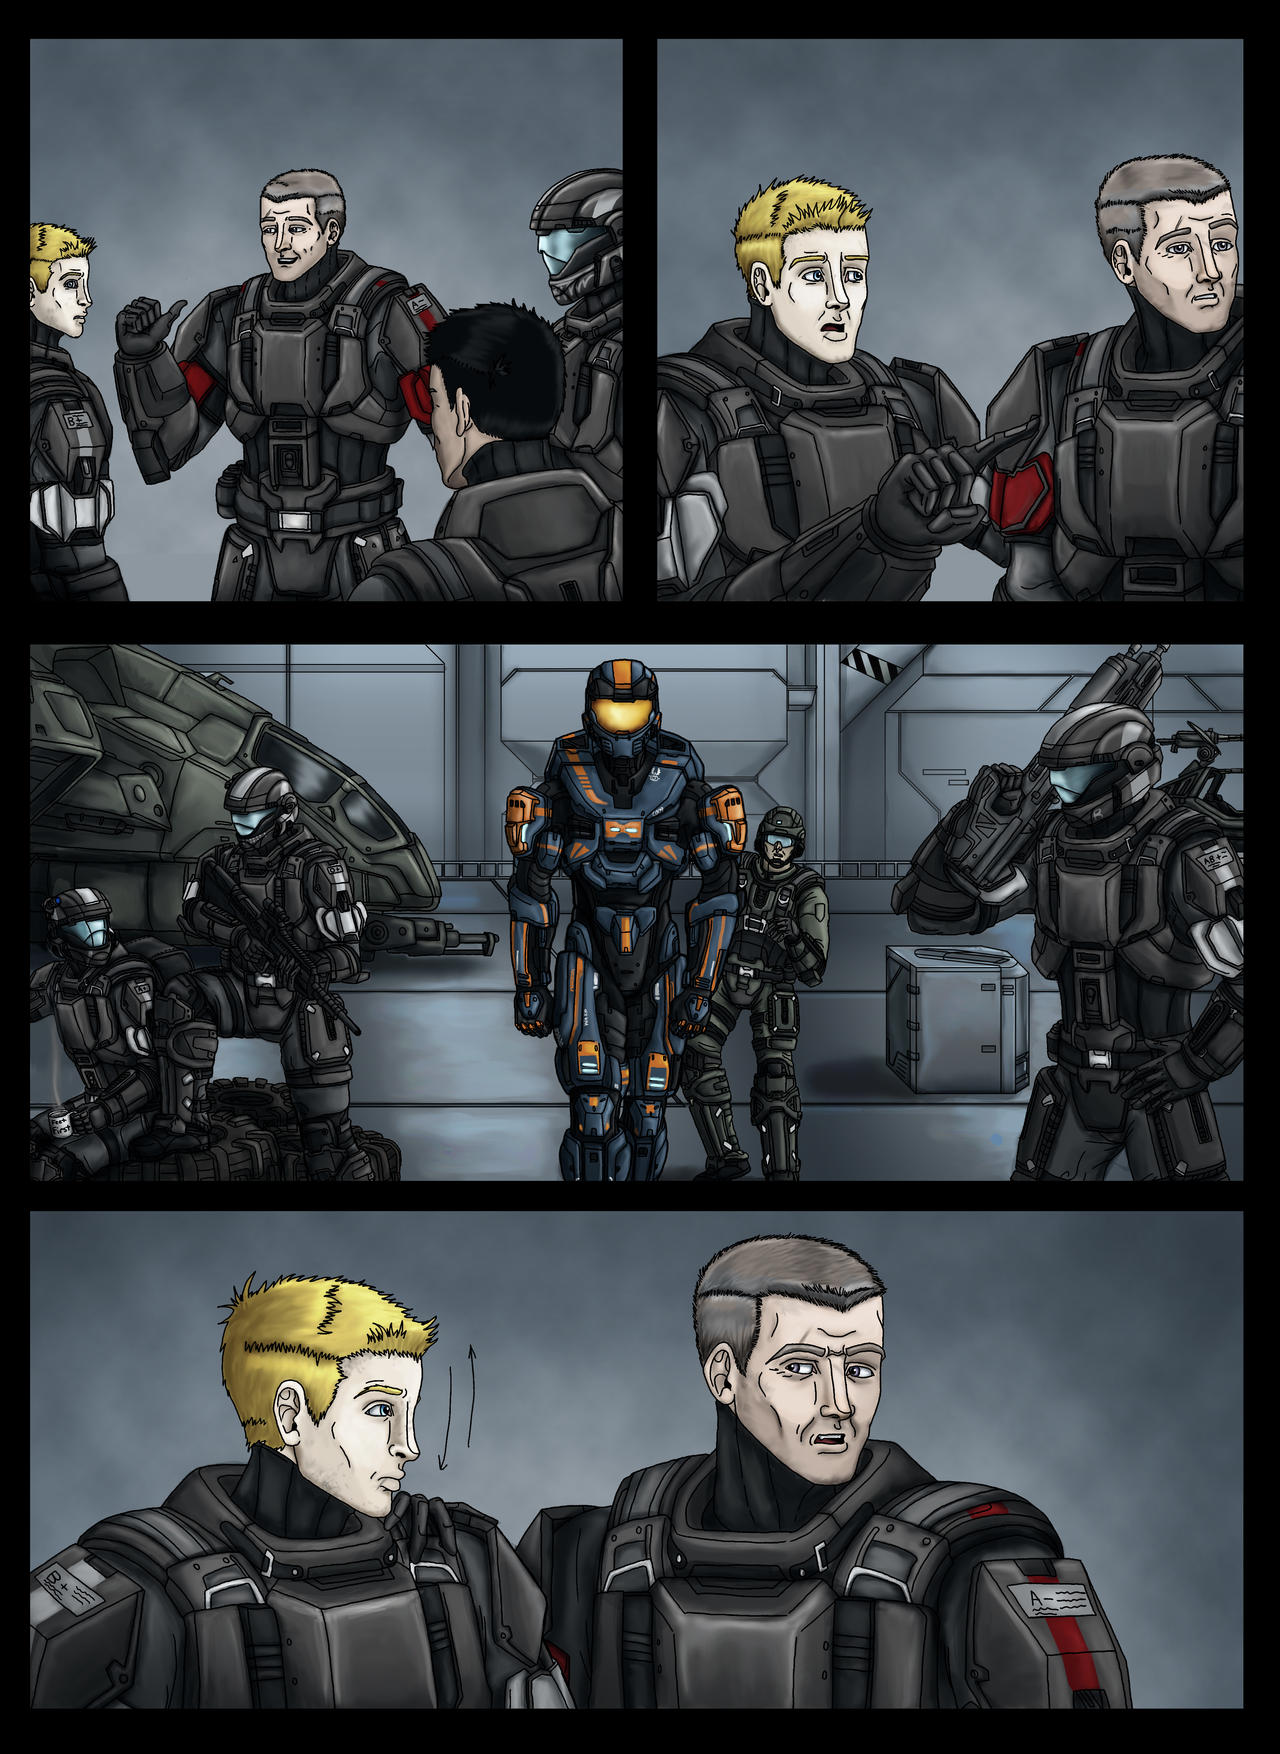 halo__dogtag_origins_page_1_by_guyver89-